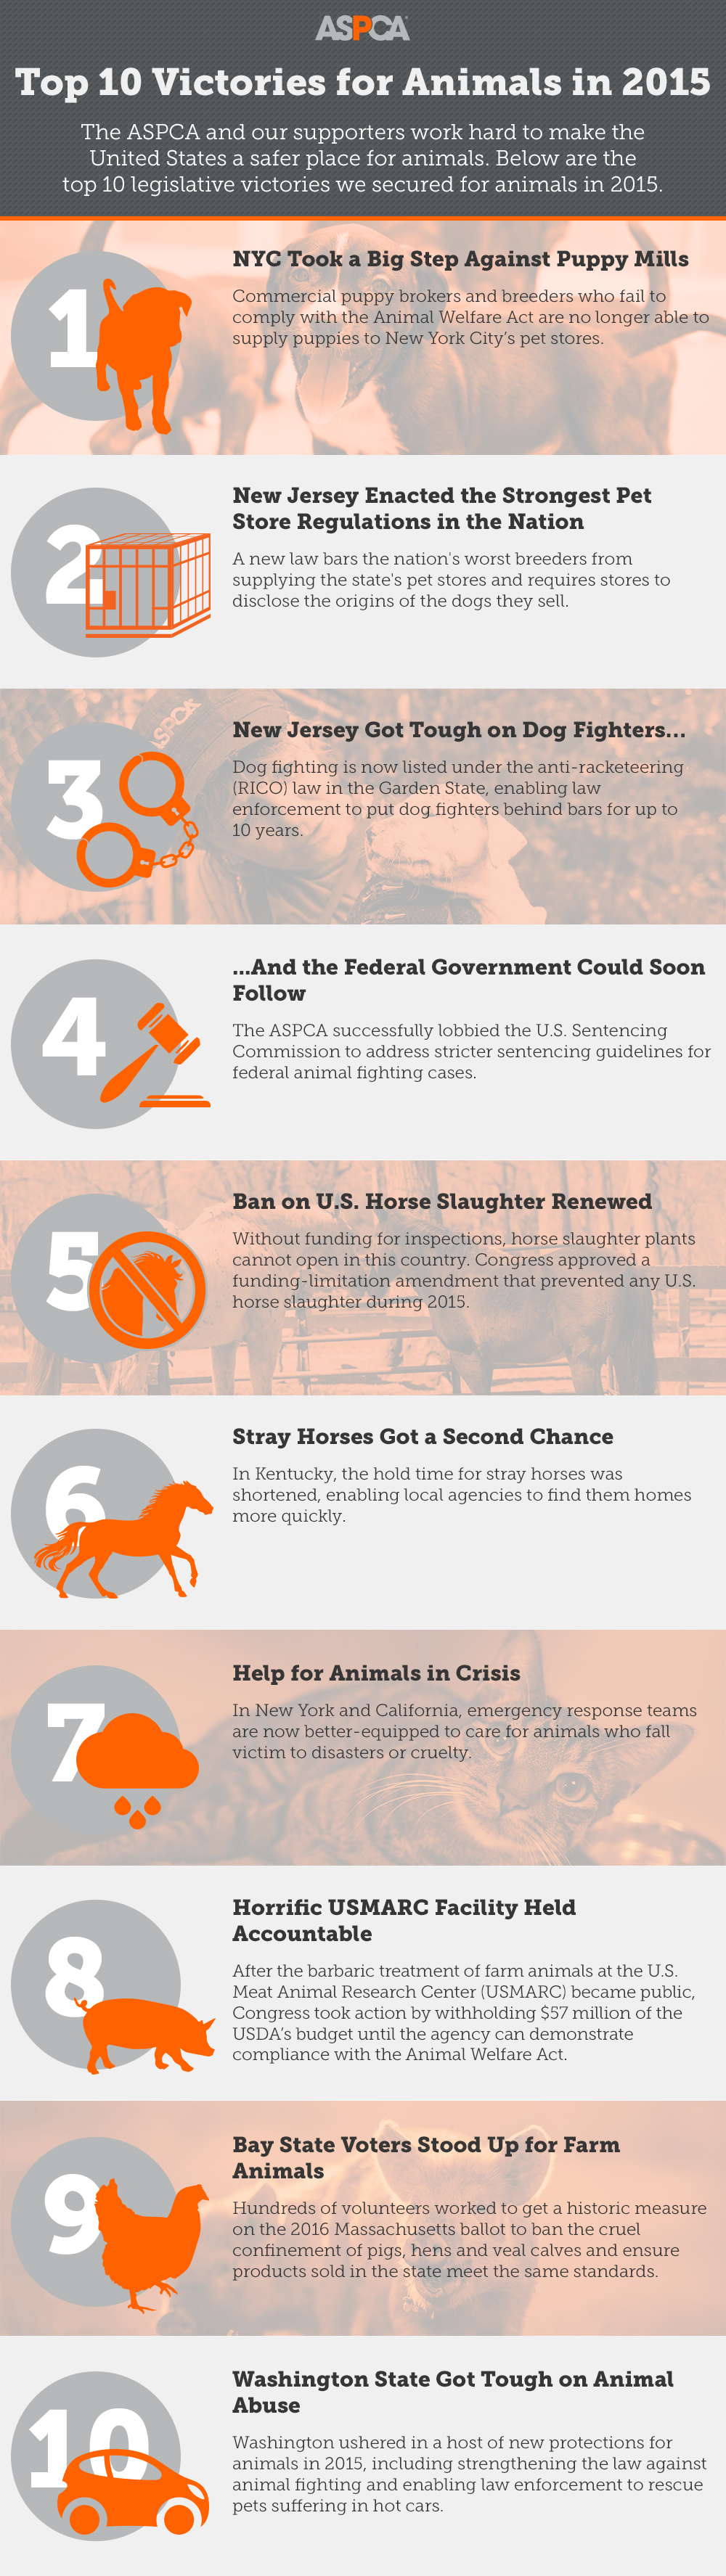 Big Wins for Animals in 2015! Check Out the ASPCA's Top 10 Legislative Victories